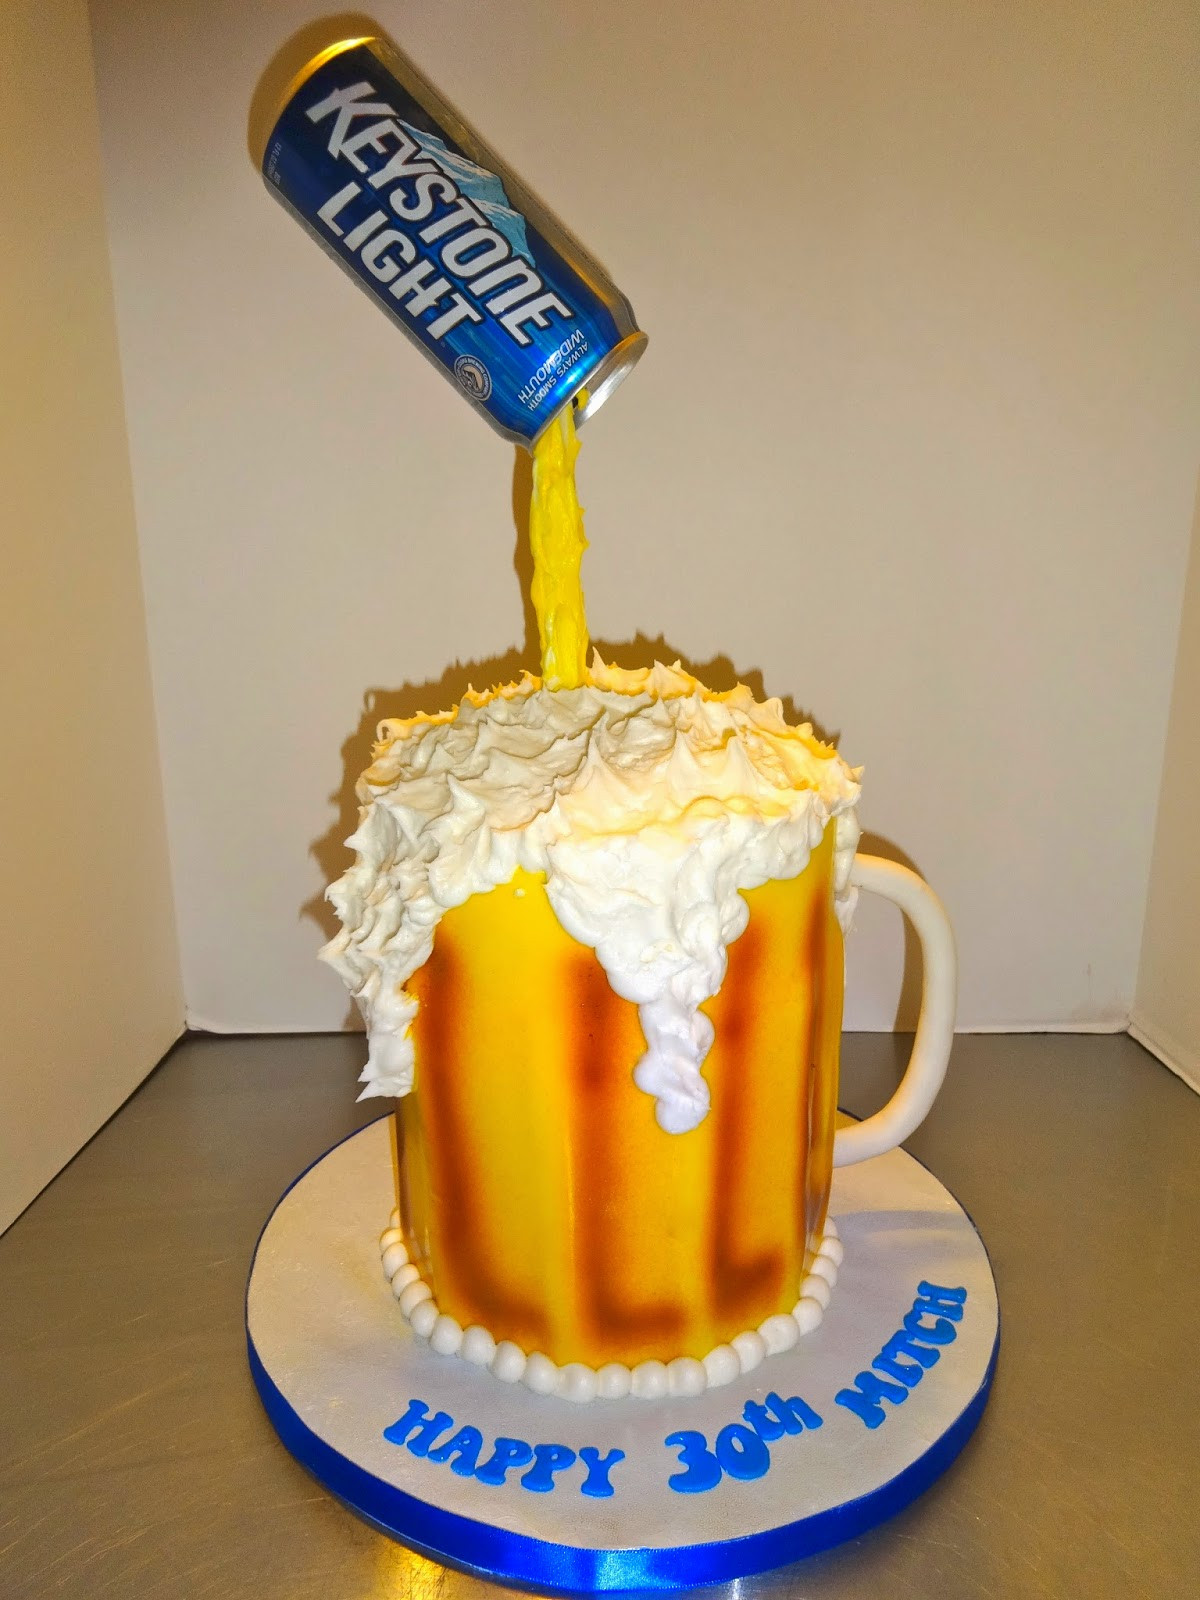 Best ideas about Happy Birthday Beer Cake . Save or Pin Cakes by Paula 30th Birthday Beer Mug Cake Now.